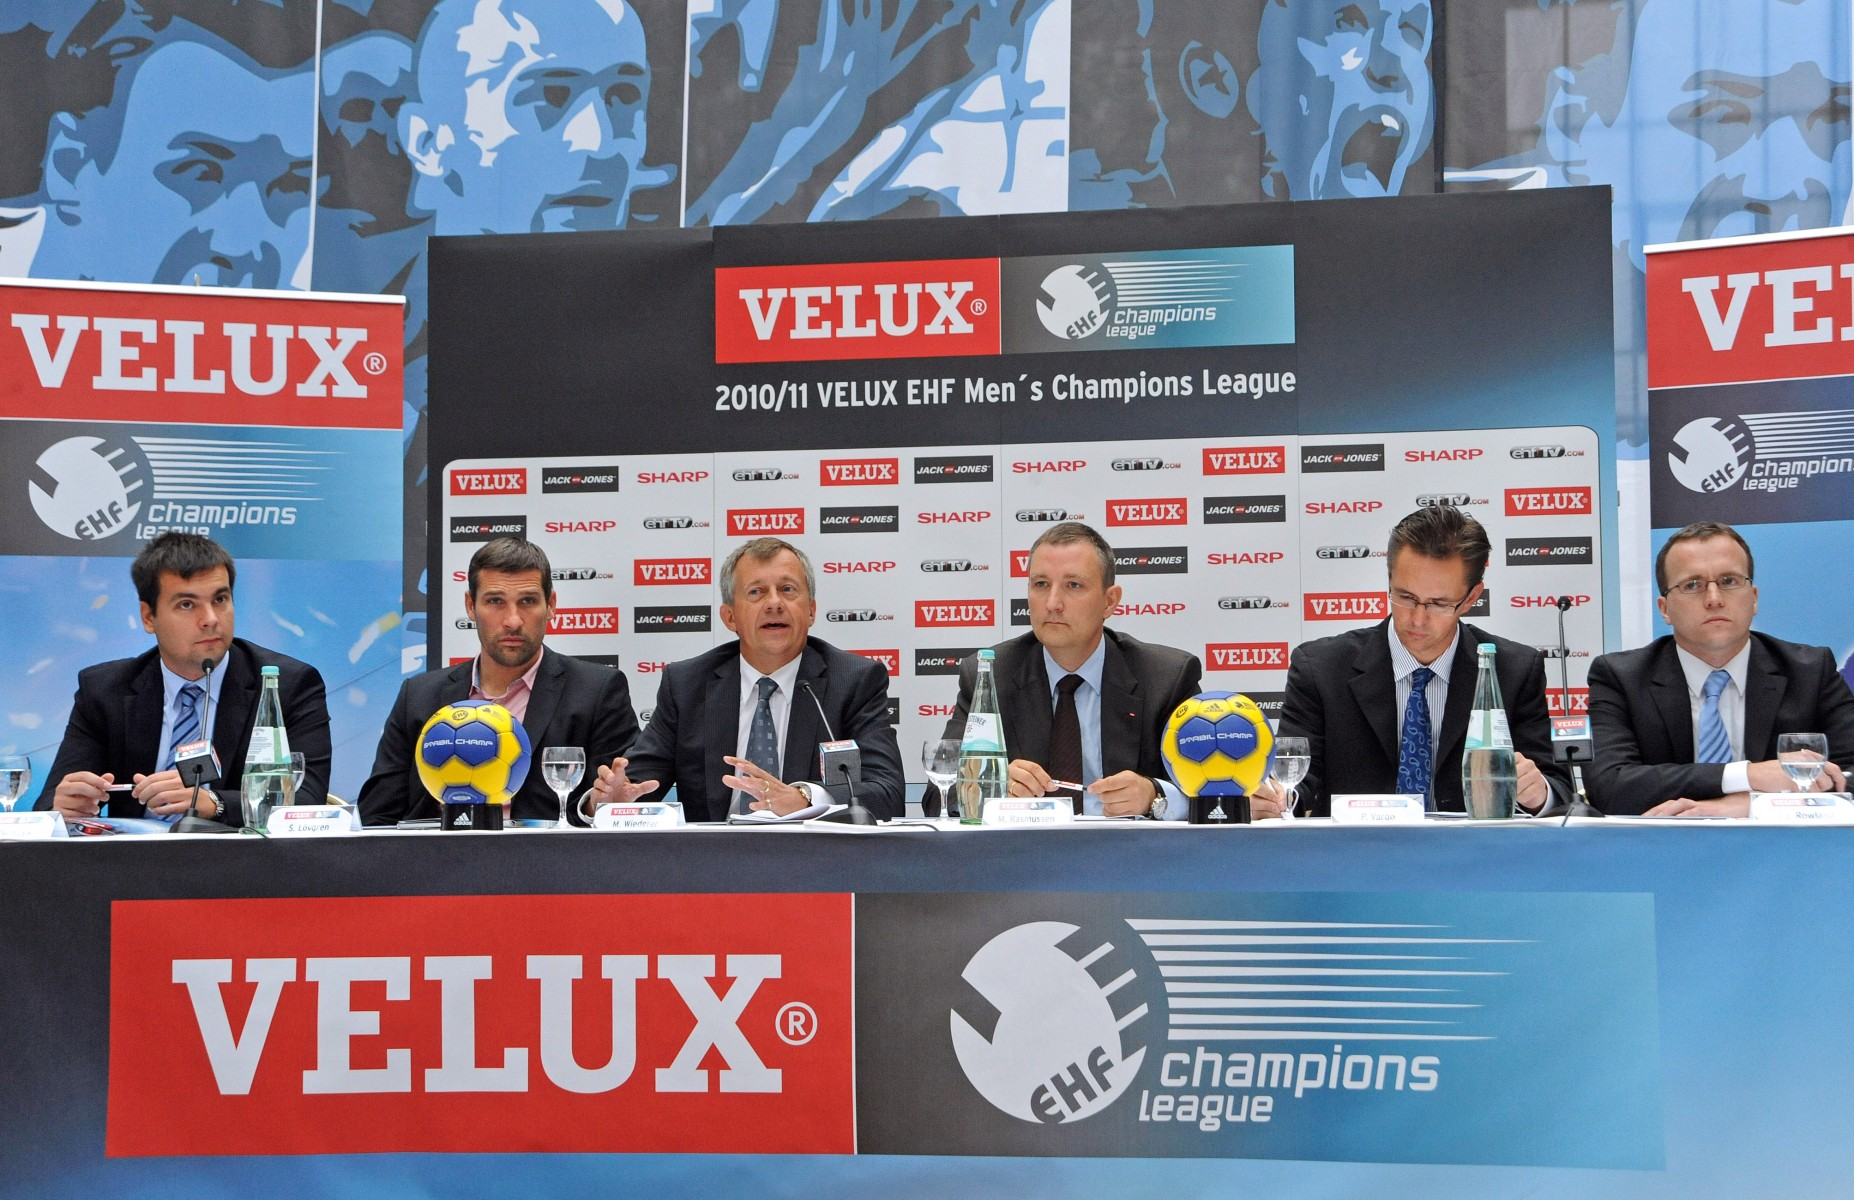 The VELUX Group is new title sponsor of EHF Champions League